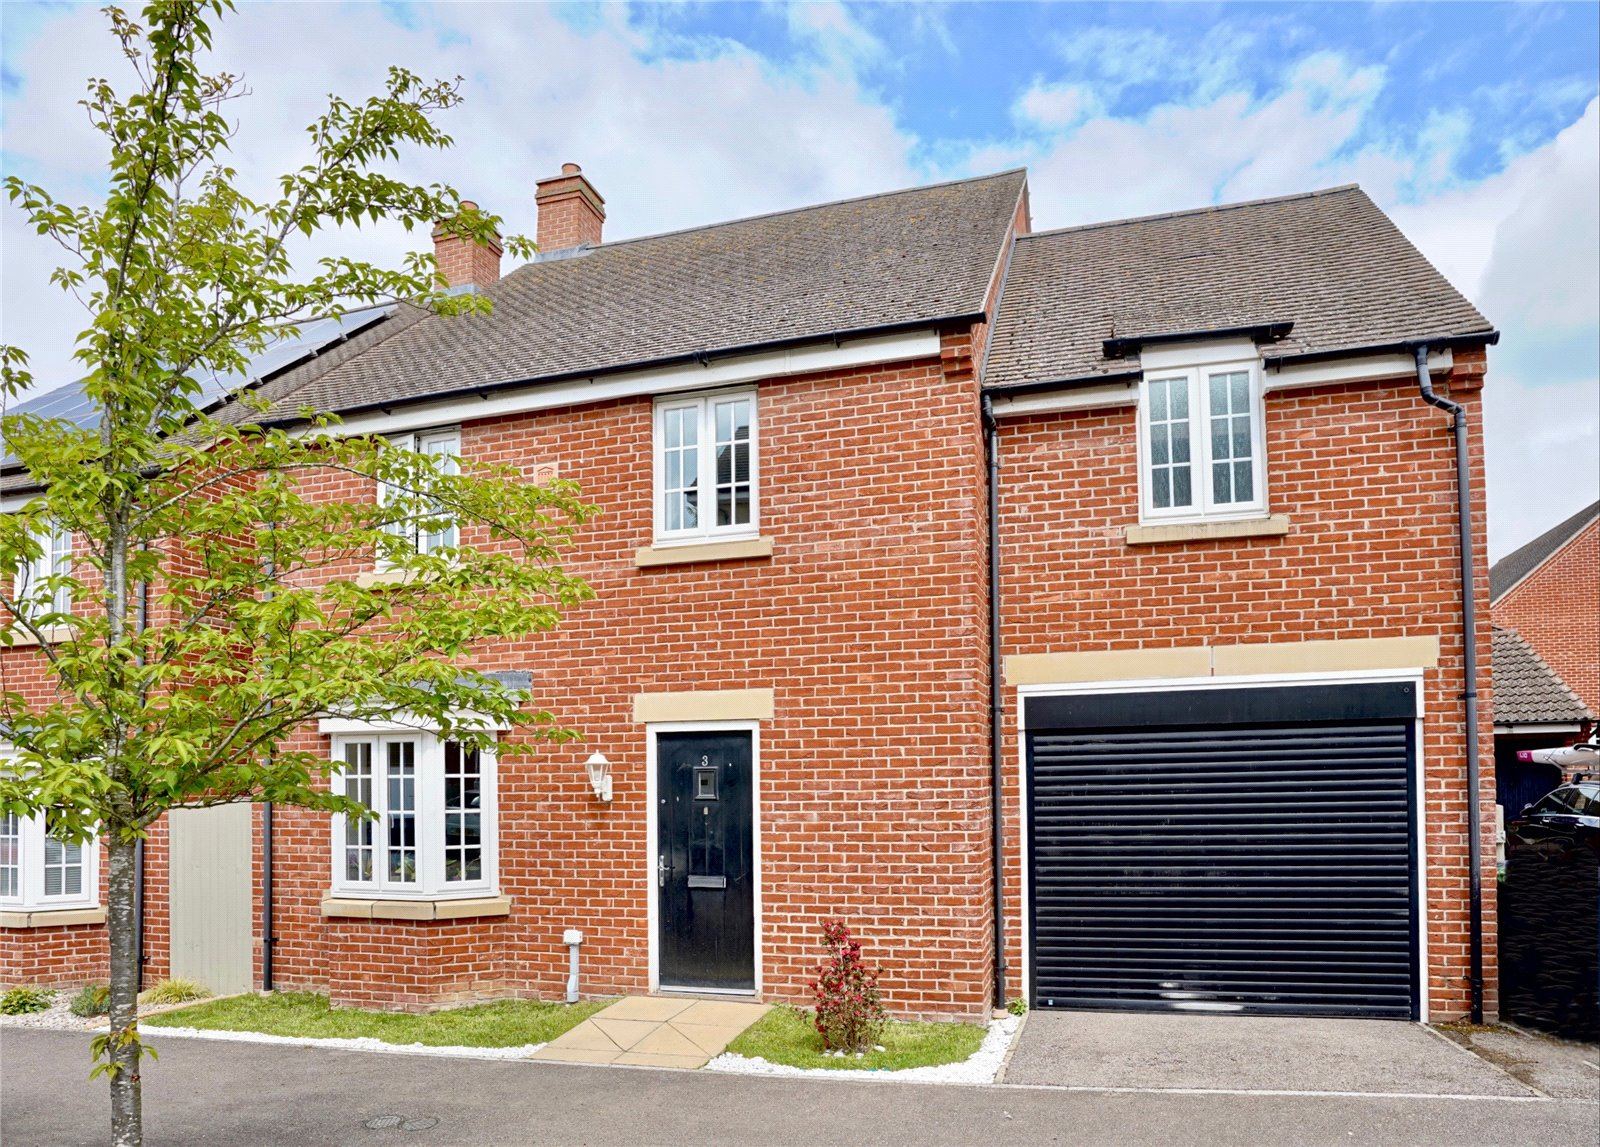 4 bed house for sale in Whiston Way, St. Neots  - Property Image 1